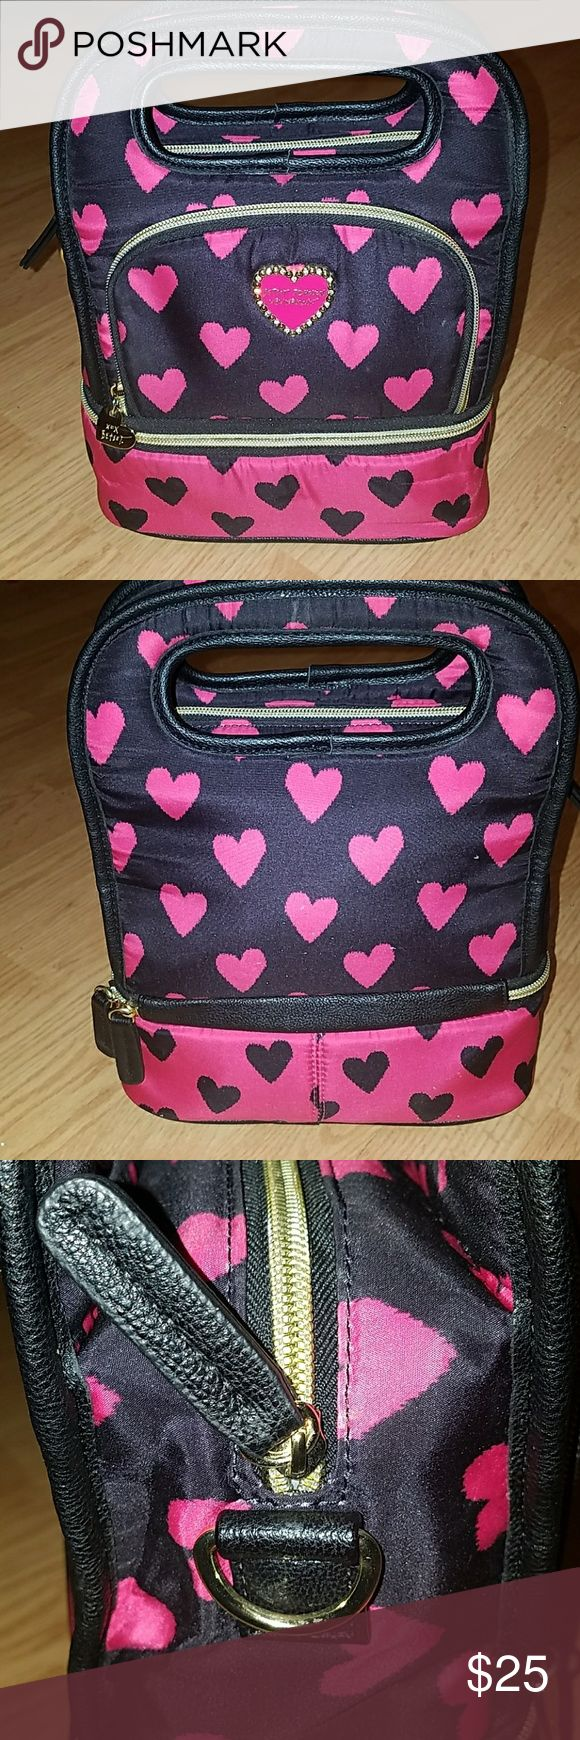 Betsy Johnson Lunchbox Betsy Johnson Lunch Box with top and bottom zippered compartments and one in front Betsey Johnson Accessories